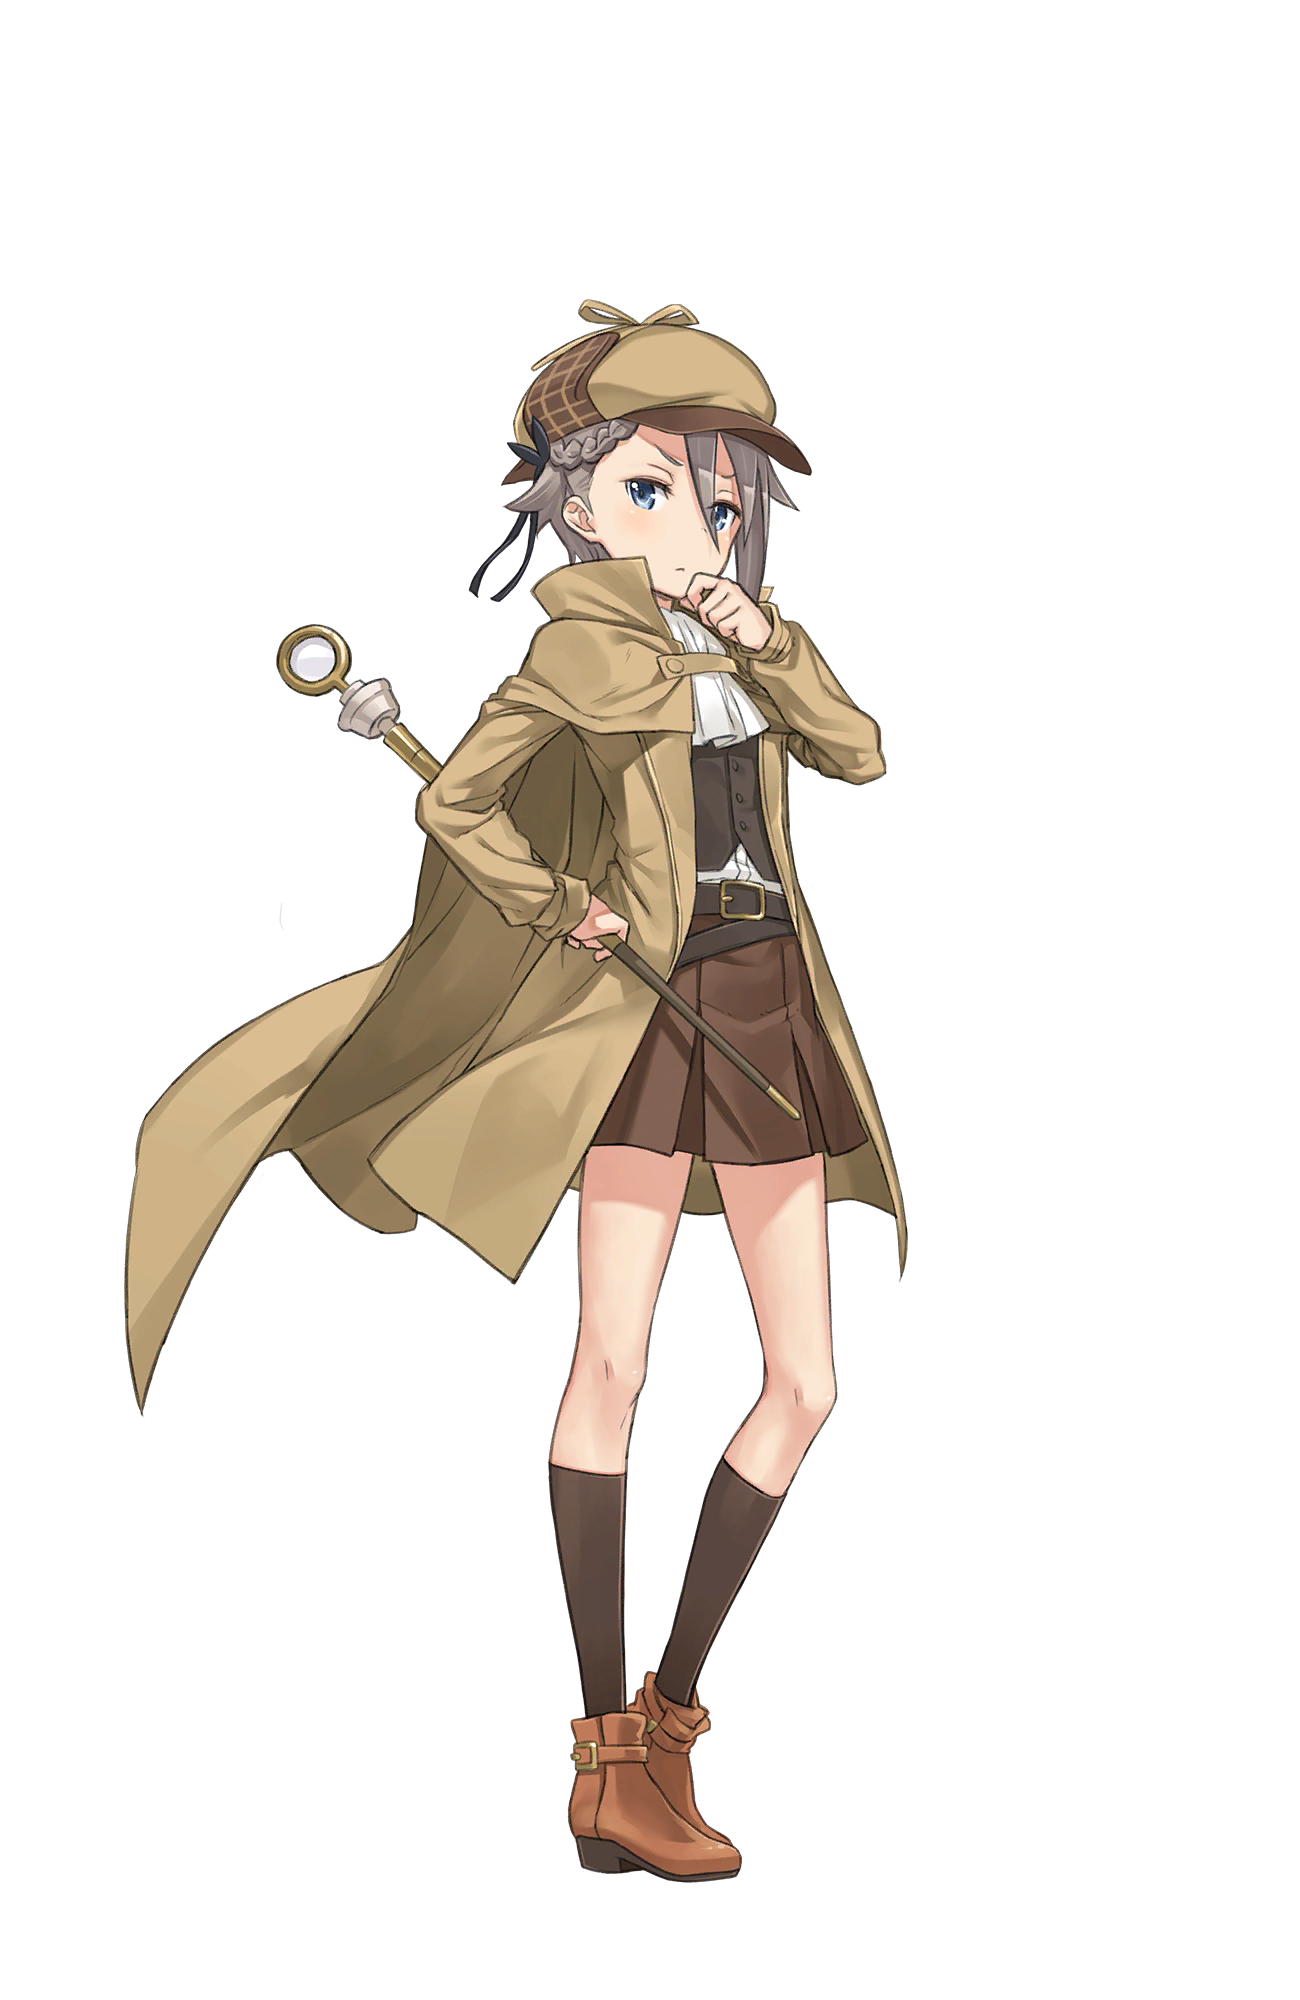 character000221_image_out_game.png